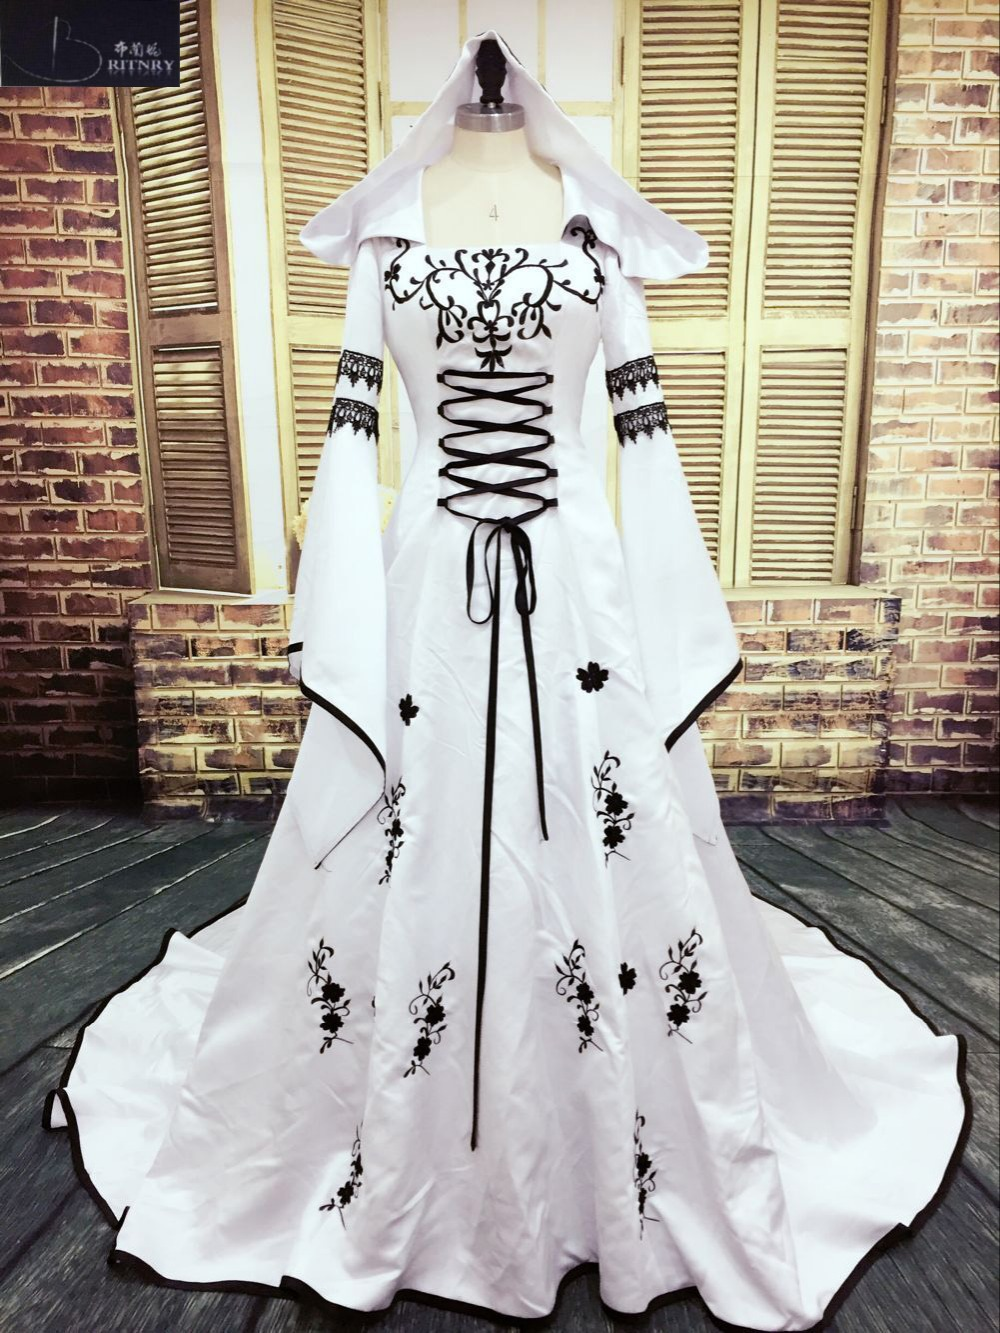 Robe De Mariage Medieval Wedding Dress Custom Made Bridal Dresses Embroidery A Line White And Black Satin Wedding Dress